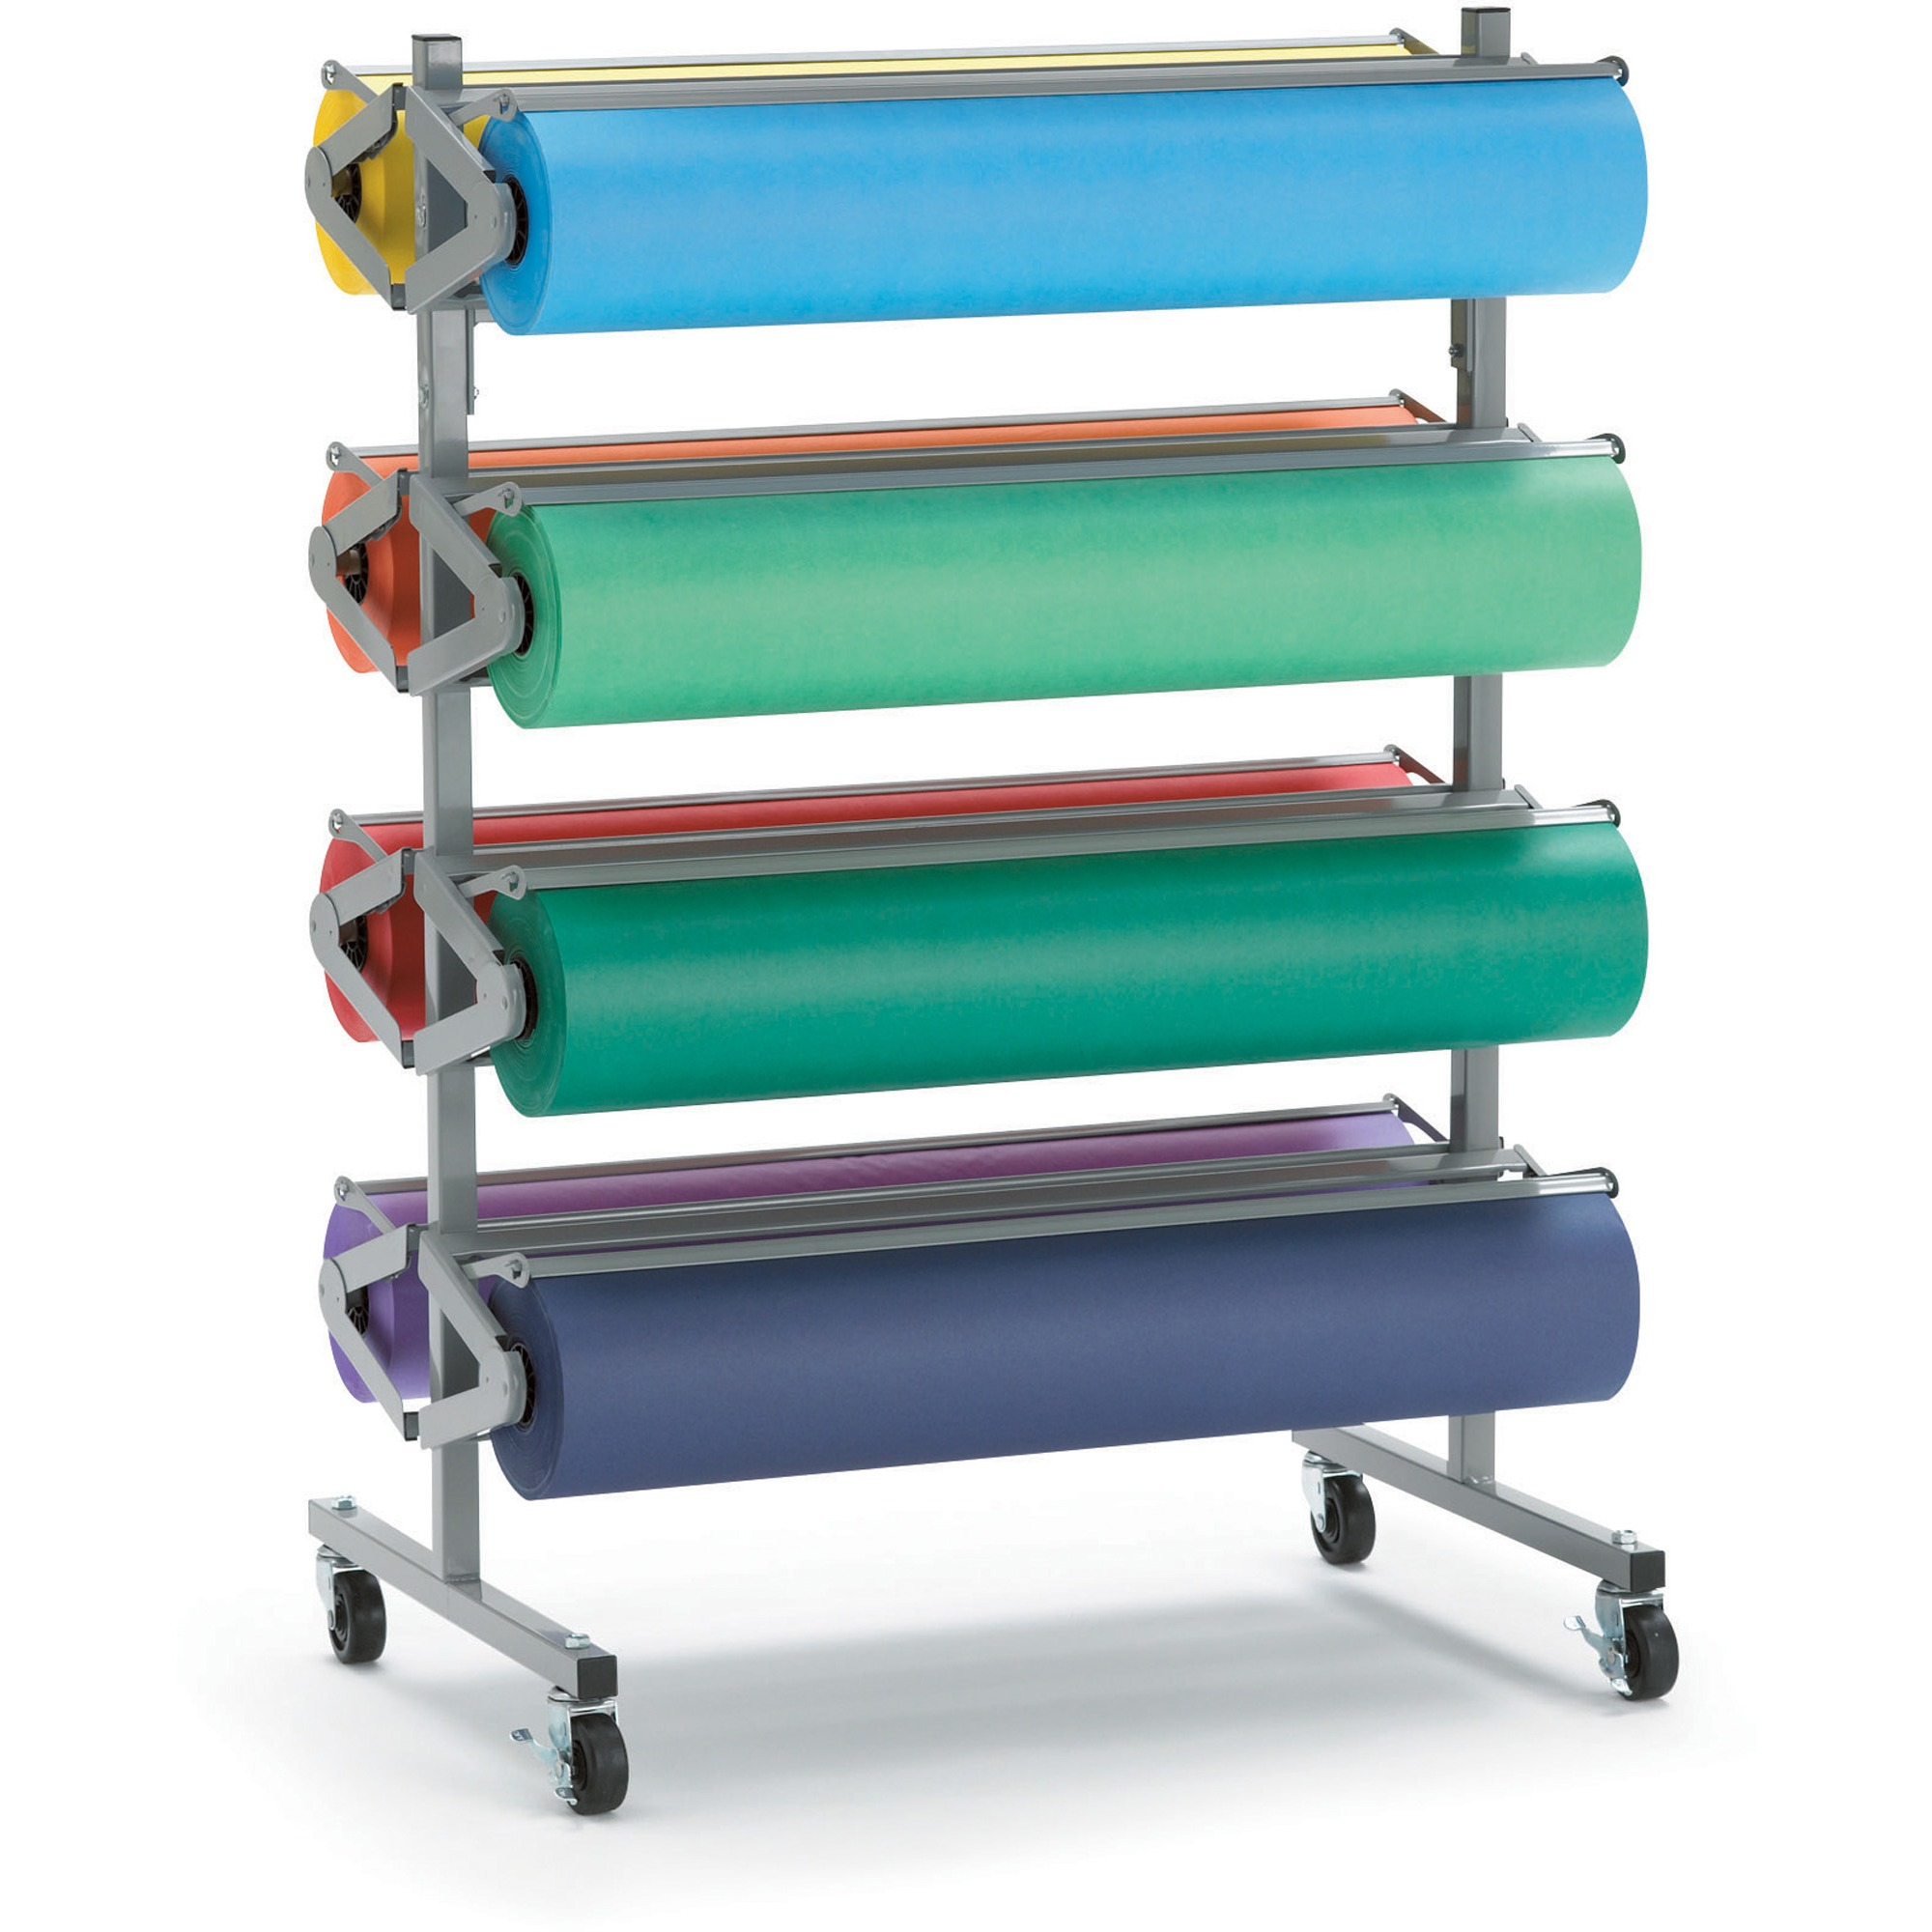 Pacon, PAC67780, Horizontal Art Paper Roll Dispenser, 1 Each, Gray